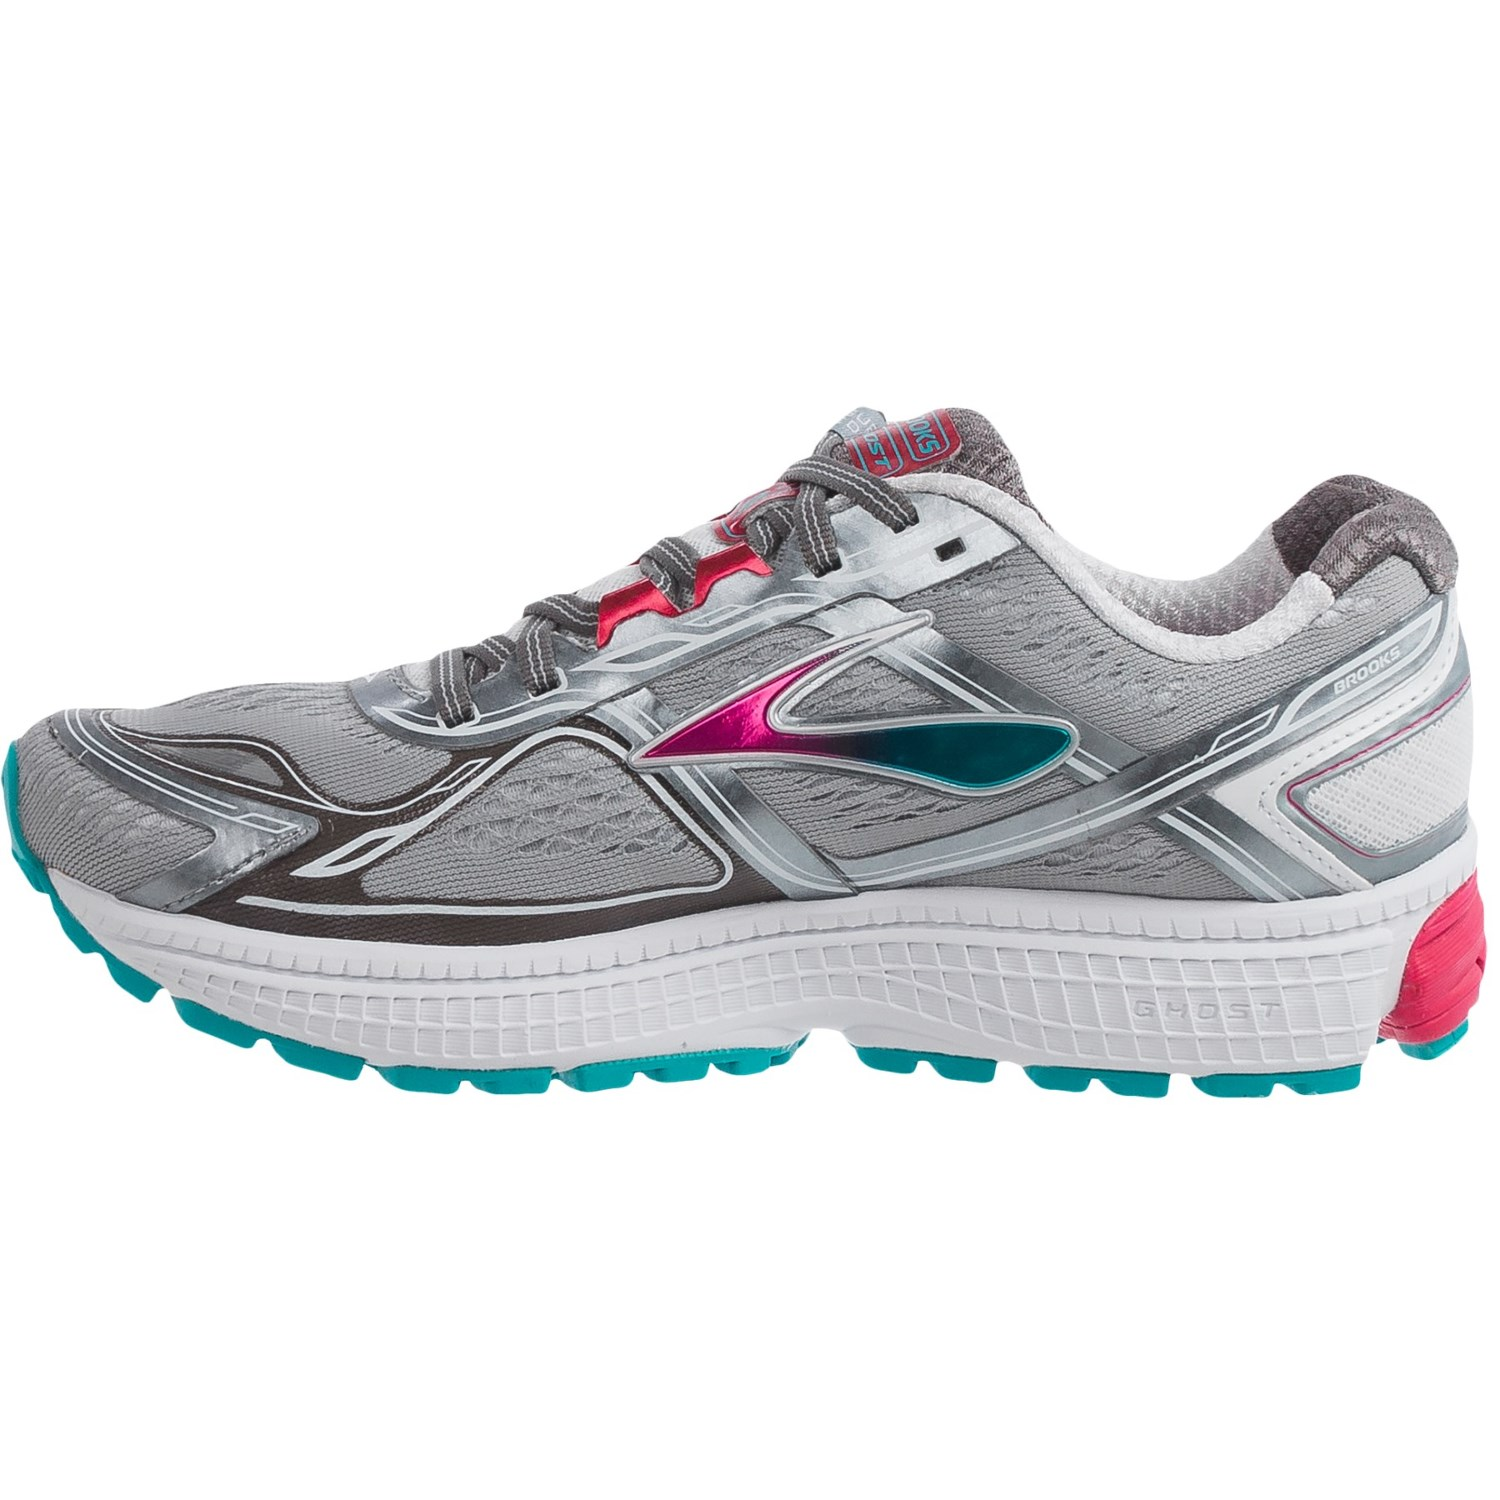 Brooks ghost running shoes women